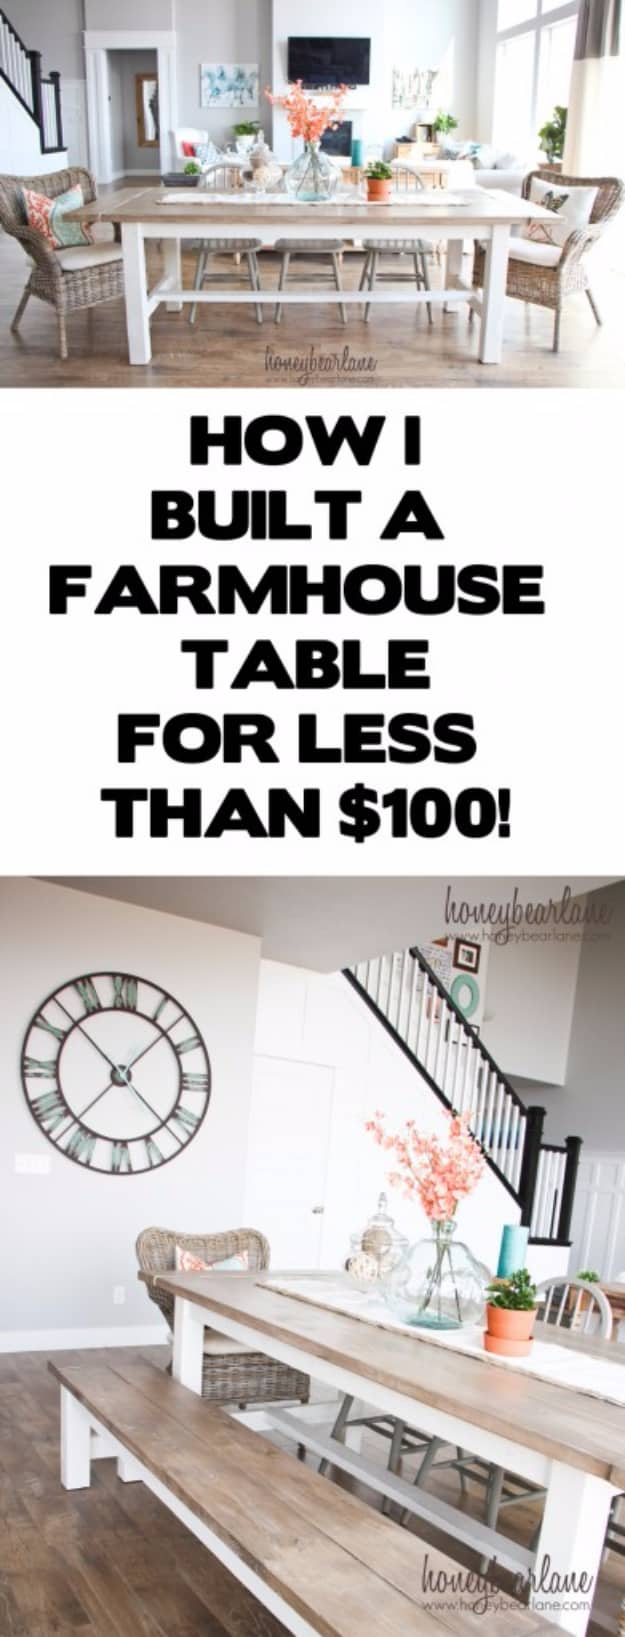 Epic And Inexpensive Farmhouse Table